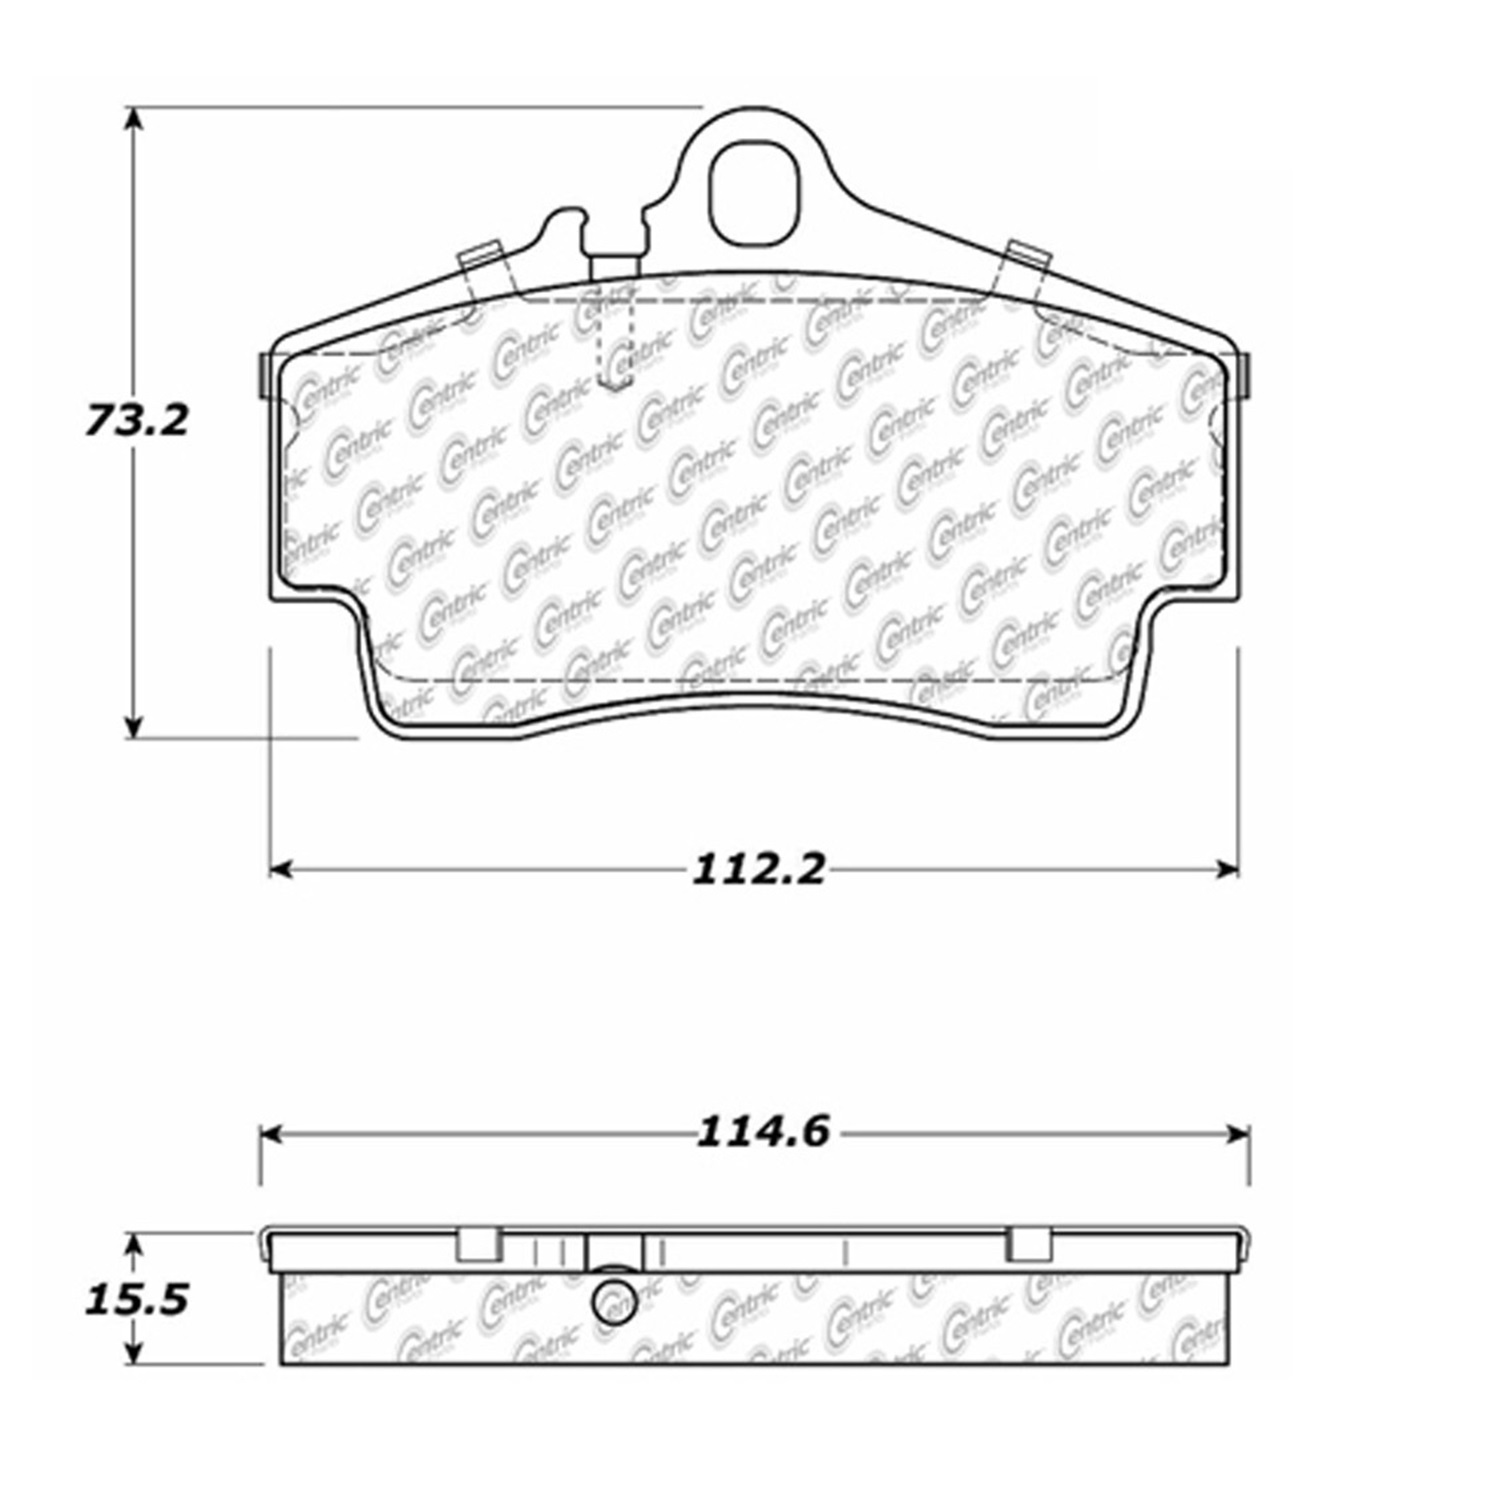 StopTech 105.07380 Disc Brake Pad Fits 98-10 911 Boxster Cayman